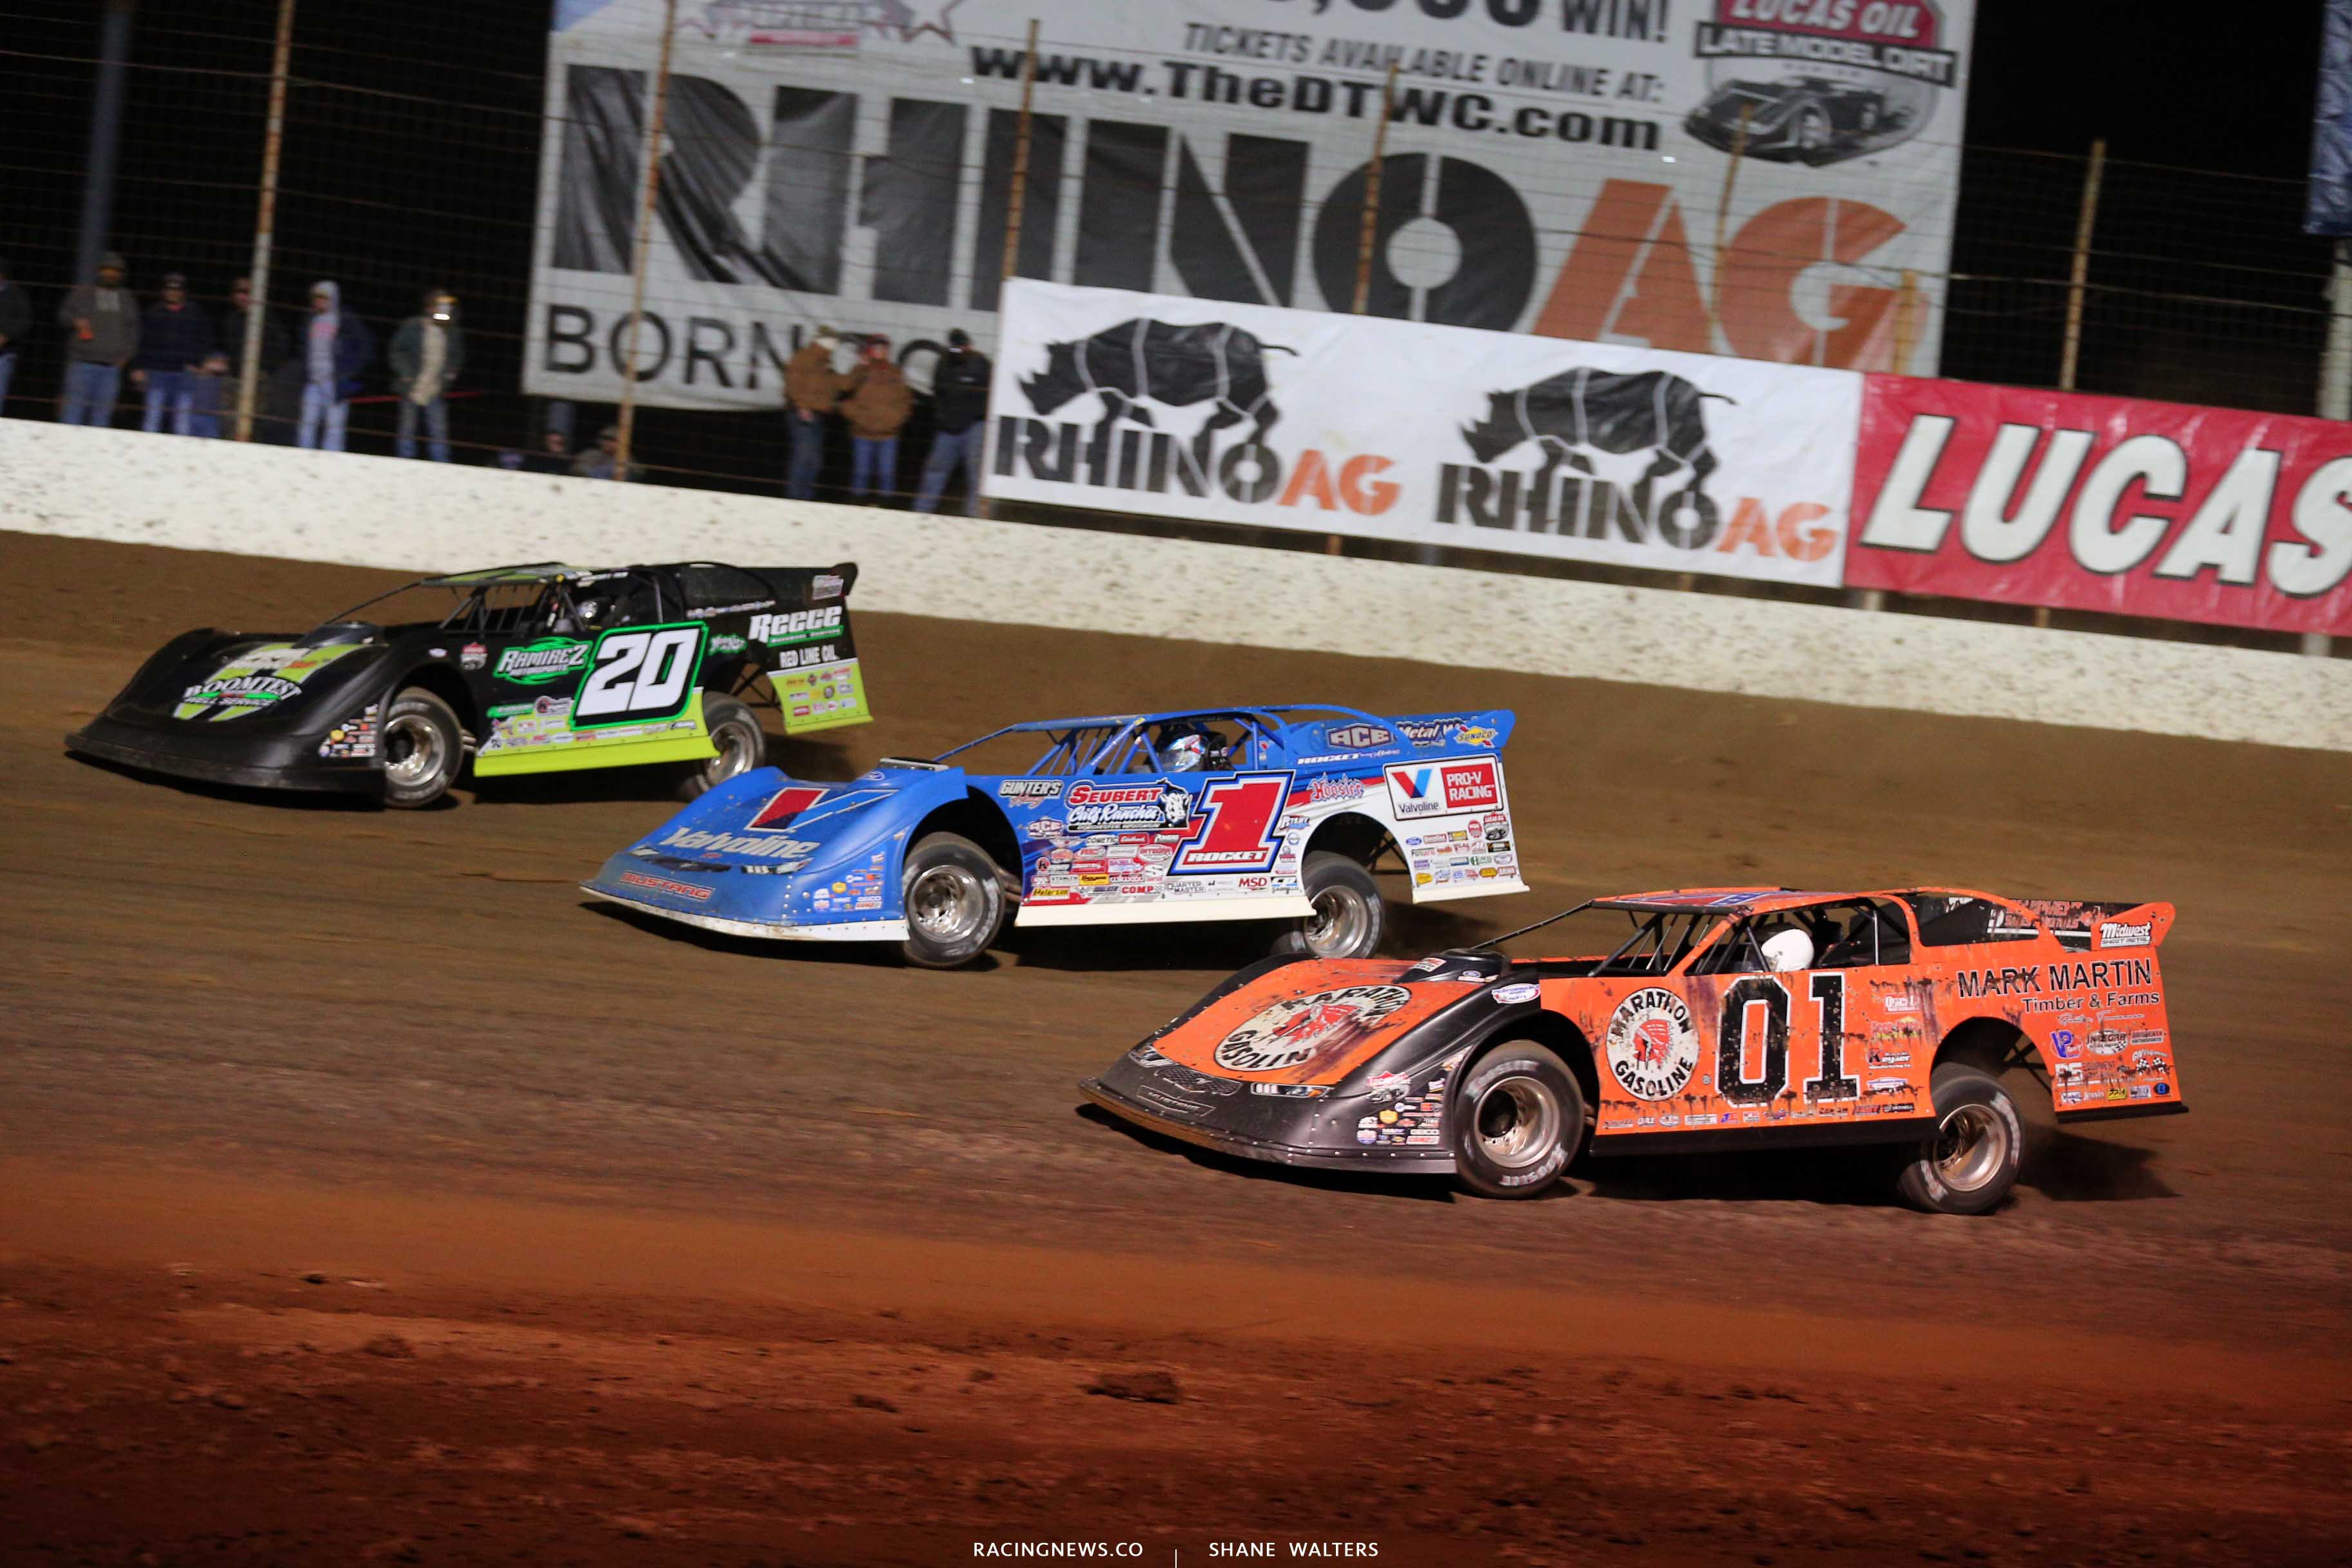 Dirt Track World Championship Results: October 19, 2019 (Lucas Oil Late Models) - Racing News